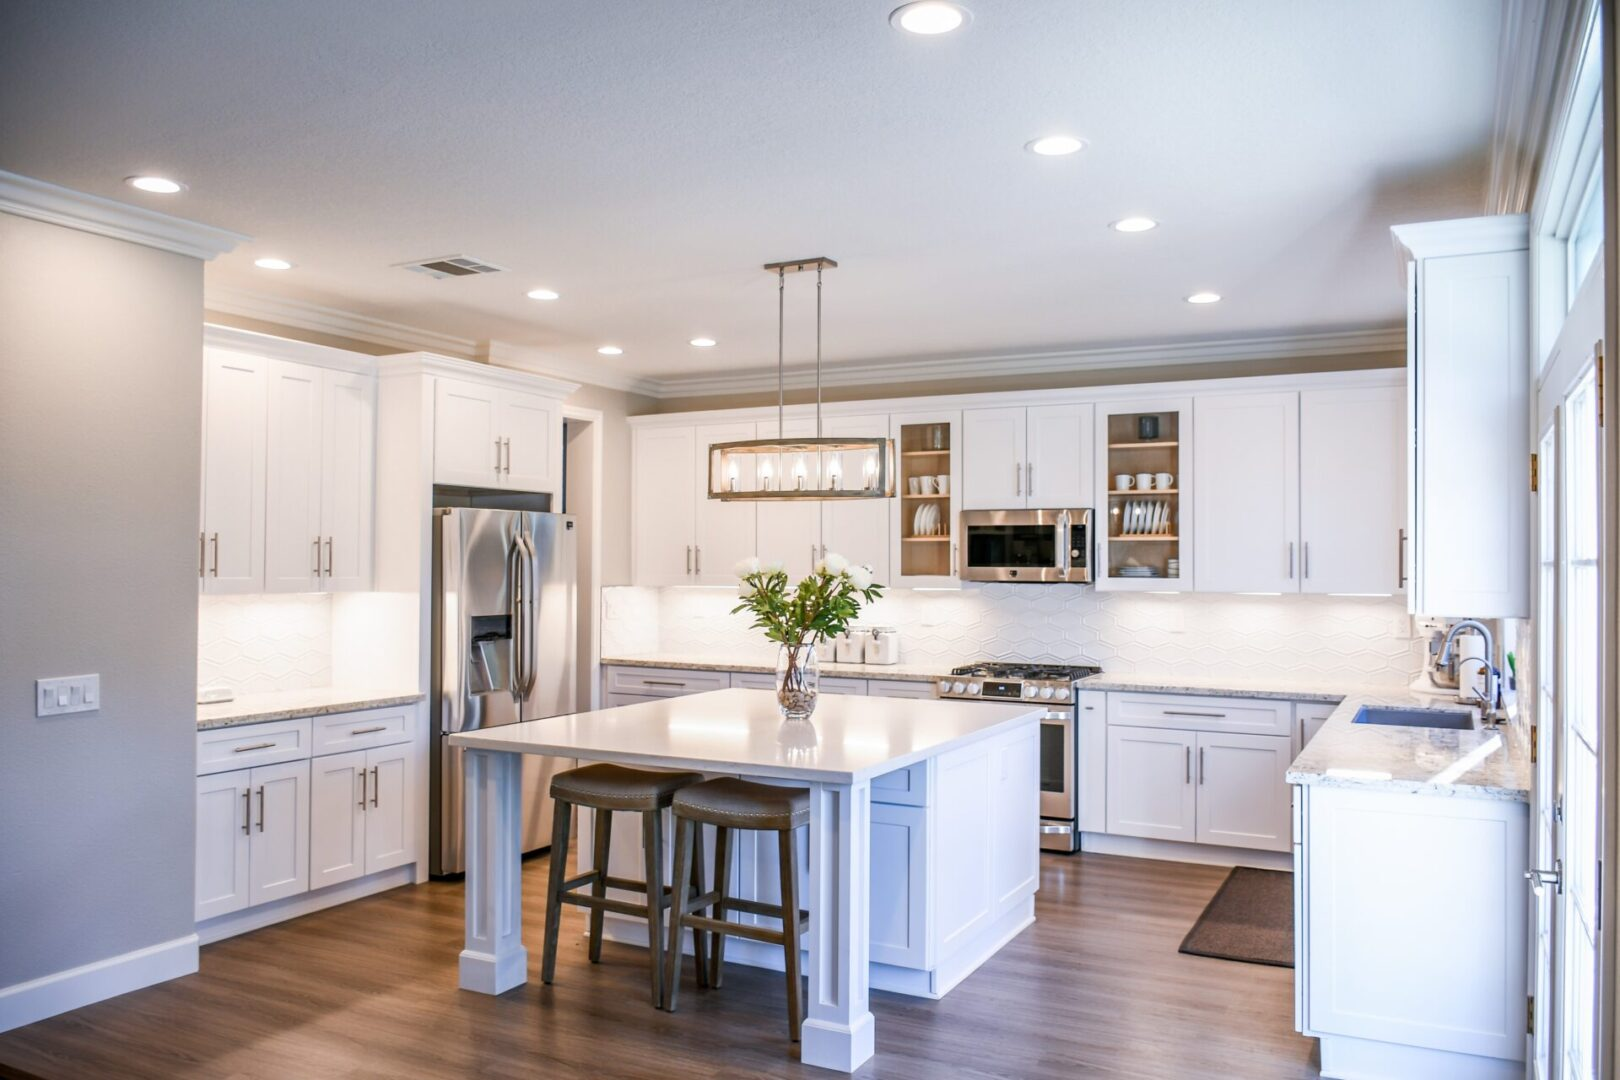 kitchen-with-furniture-and-appliances-2724748